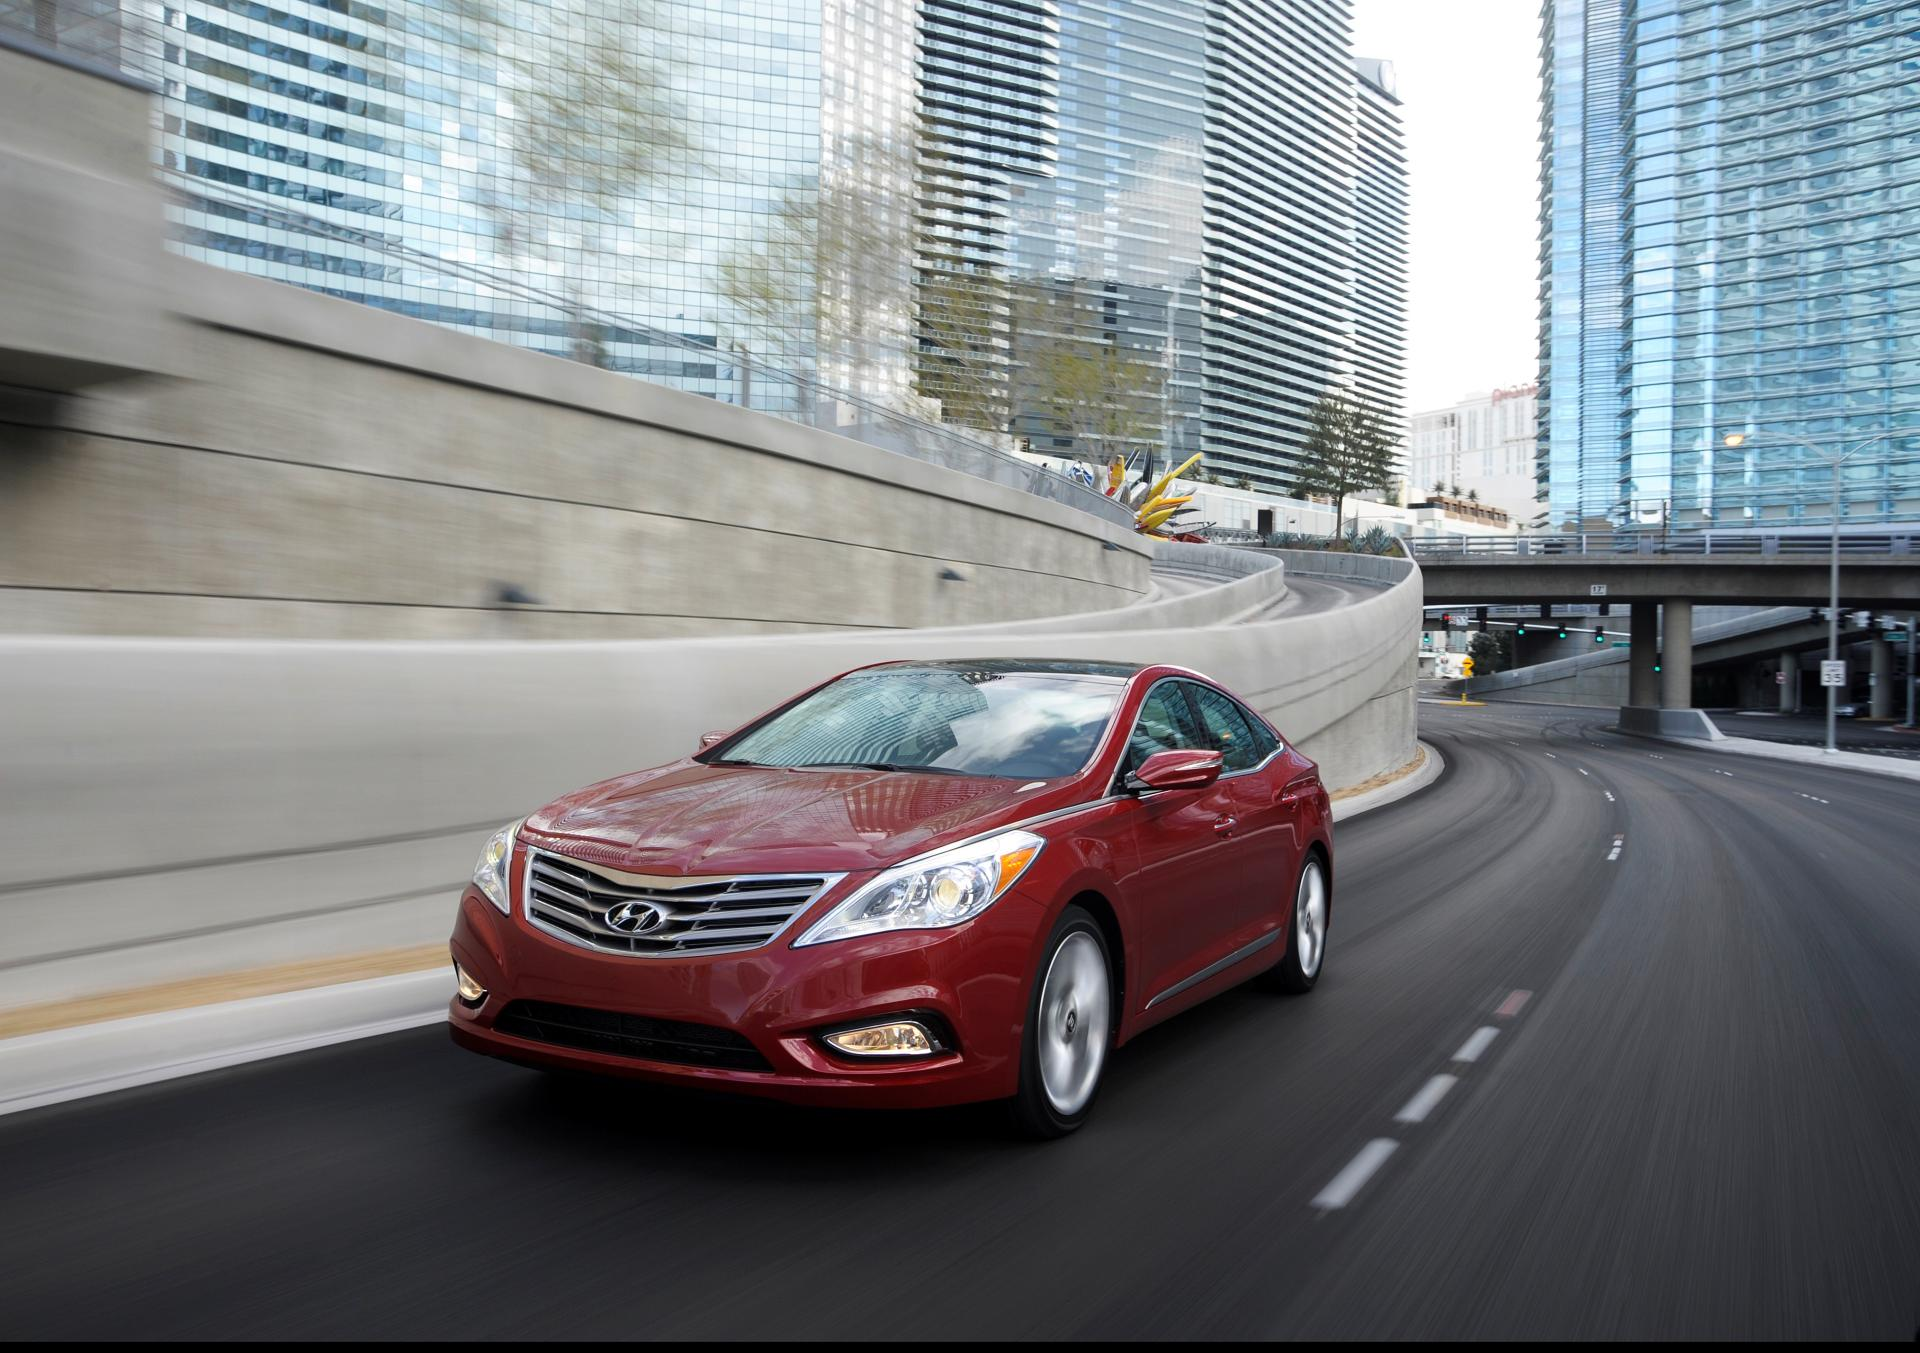 2014 Hyundai Azera technical and mechanical specifications